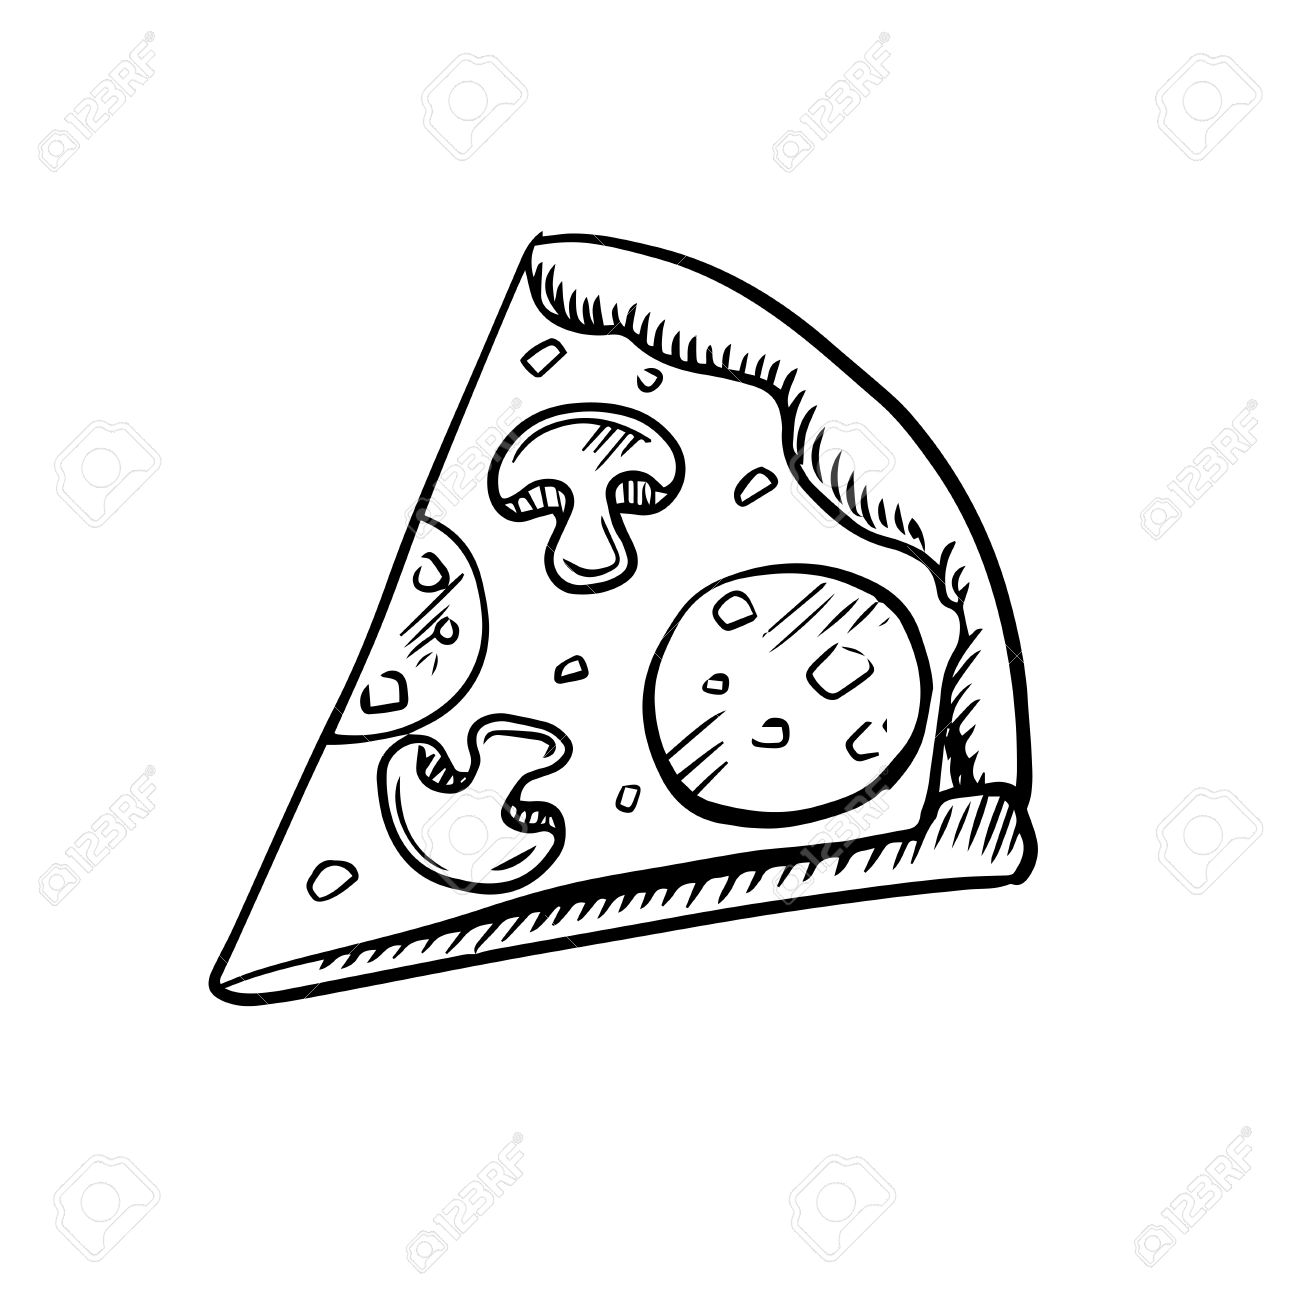 1300x1300 Black And White Slice Of Pepperoni Pizza With Mushrooms, High